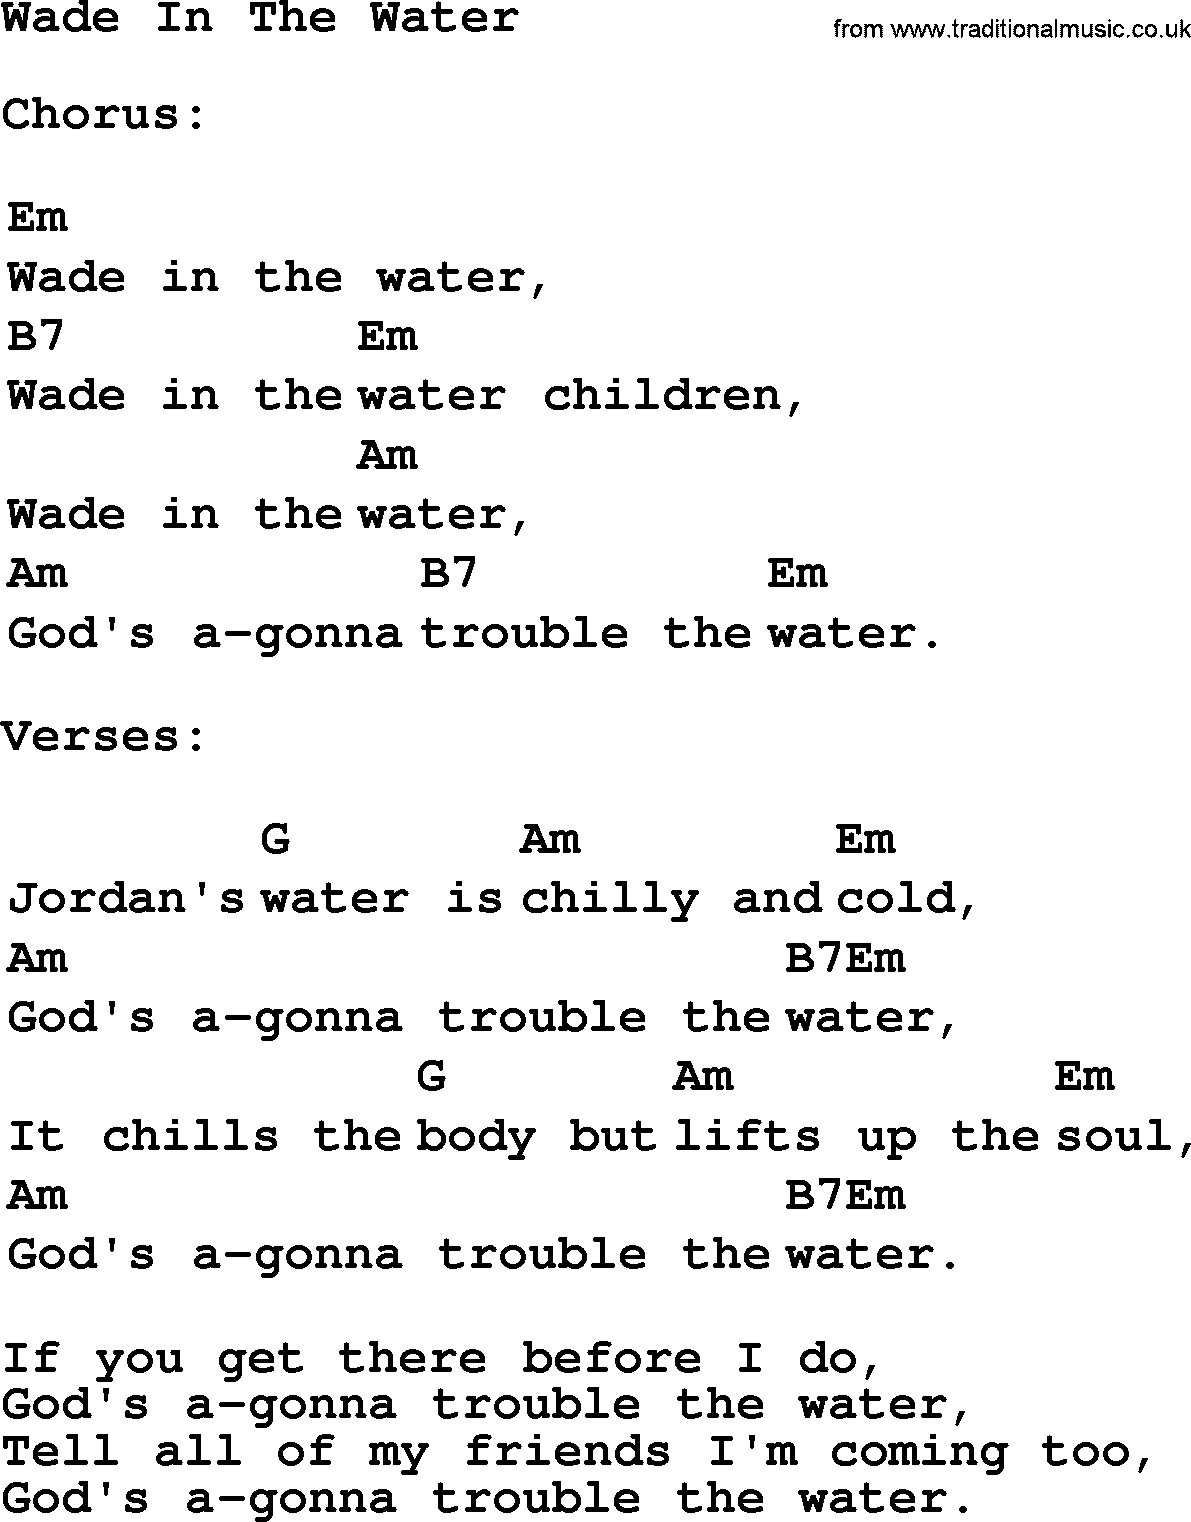 Wade the water and movie